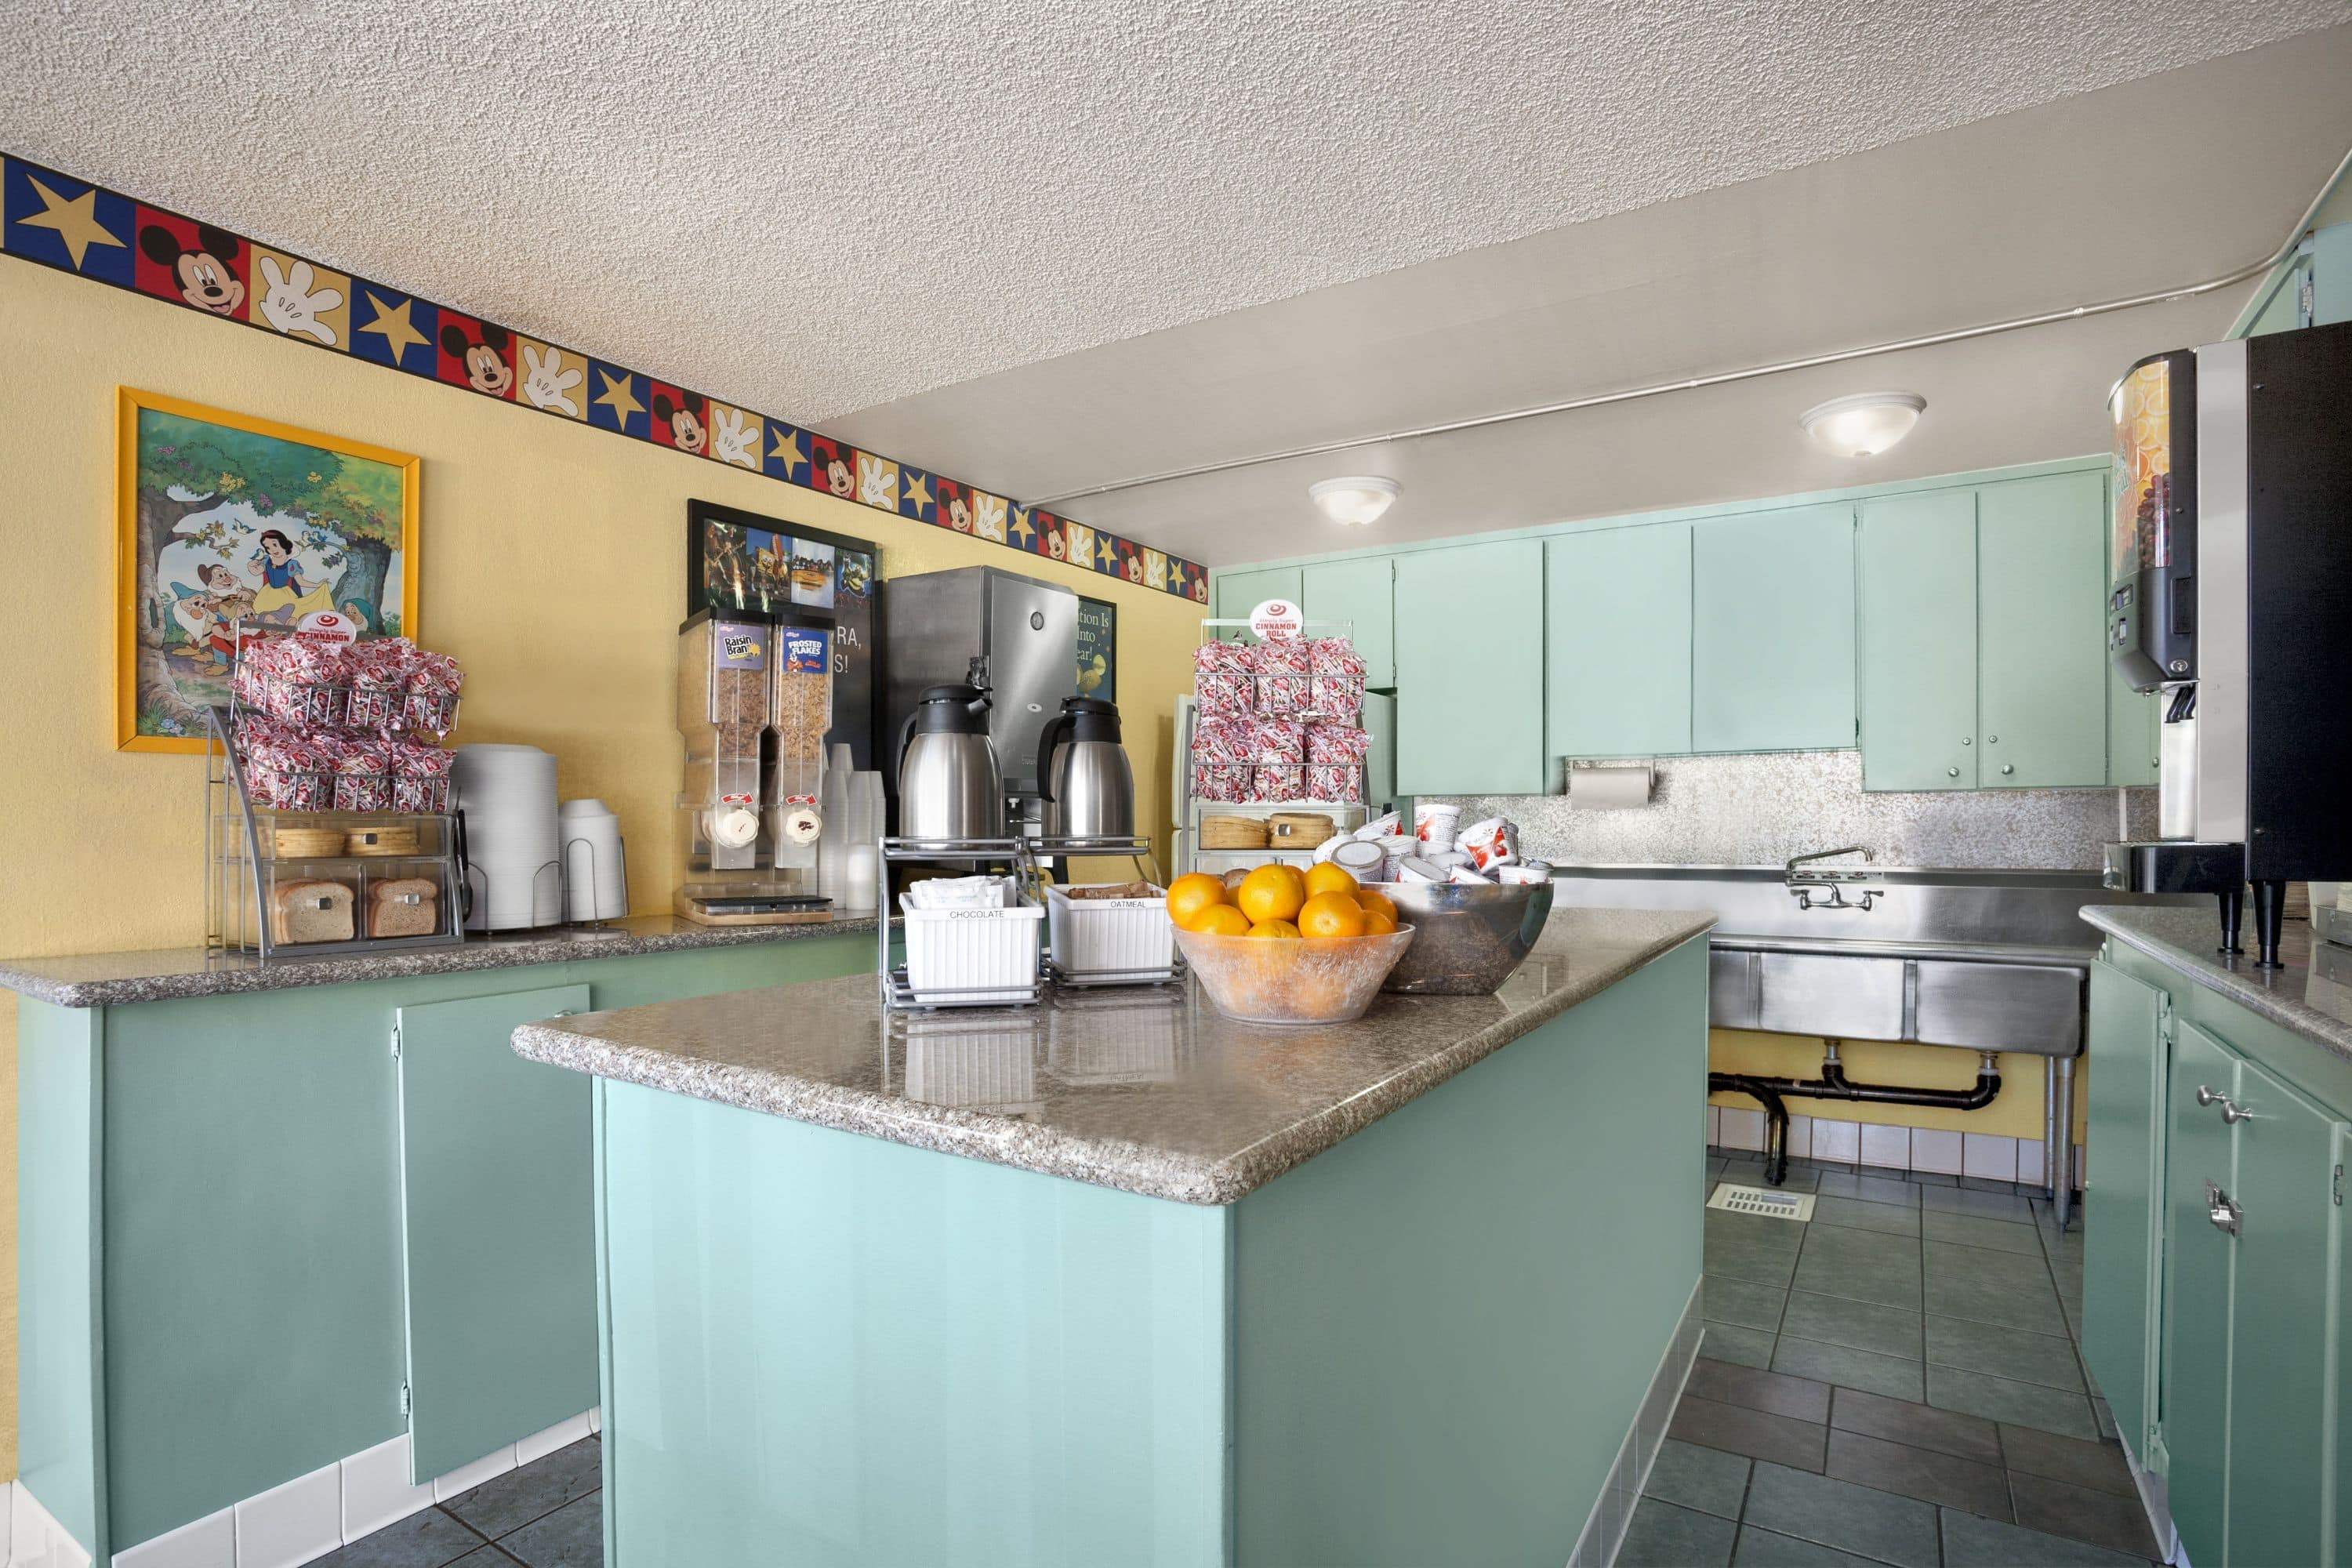 delightful Hotels Near Disneyland With Kitchen #4: Comfort for a Super Stay